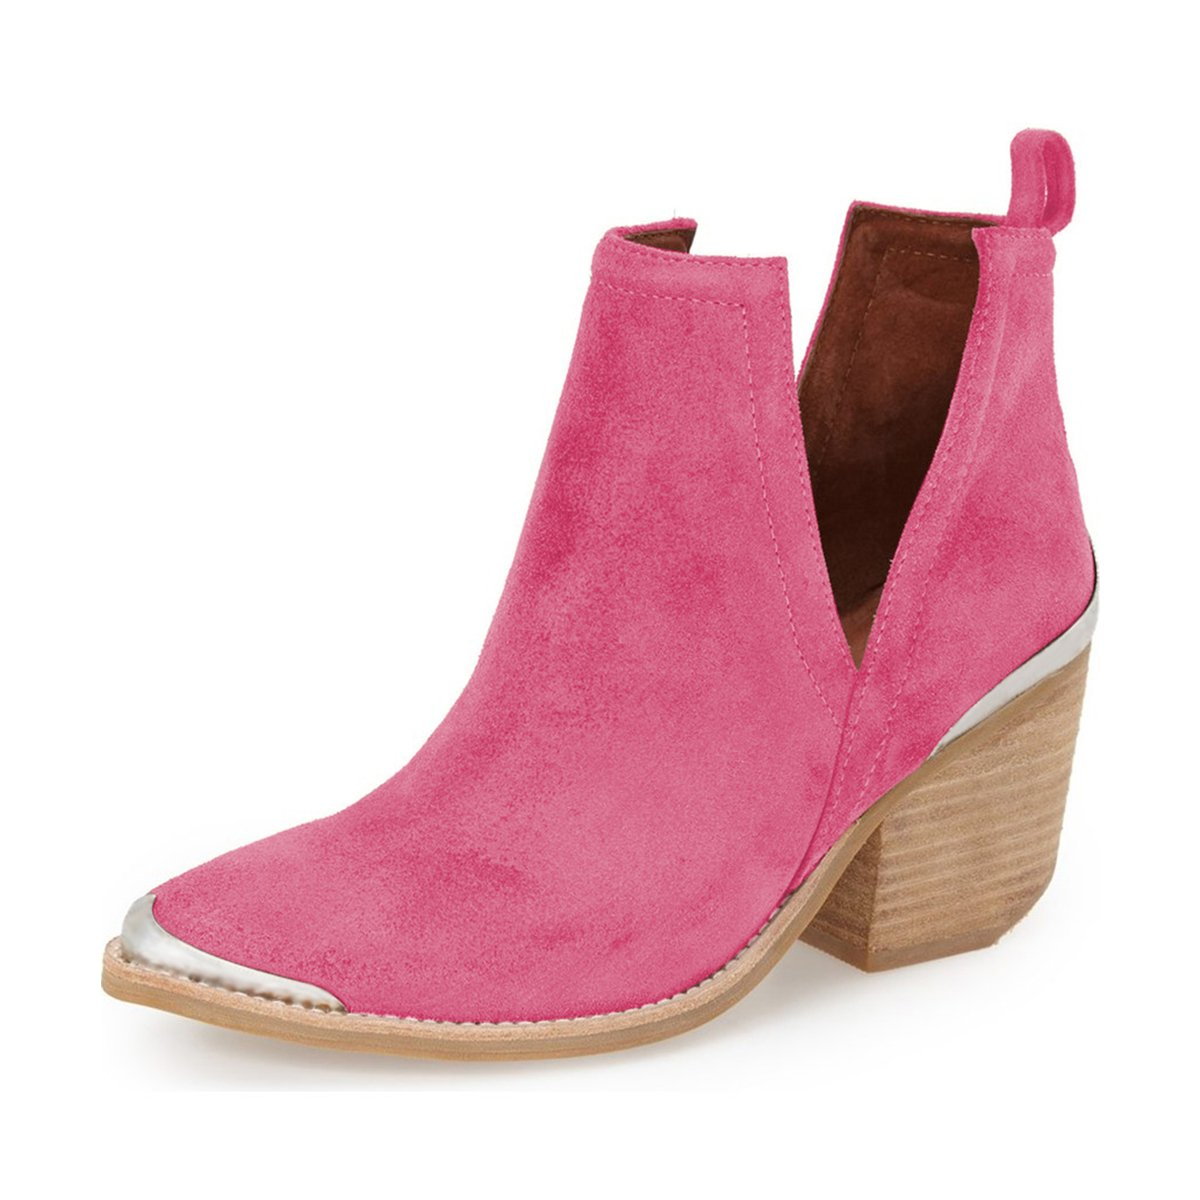 YDN Women Ankle Booties Low Heel Faux Suede Stacked Boots Cut Out Shoes with Metal Toe B07FVQKC7X 8 M US|Fuchsia